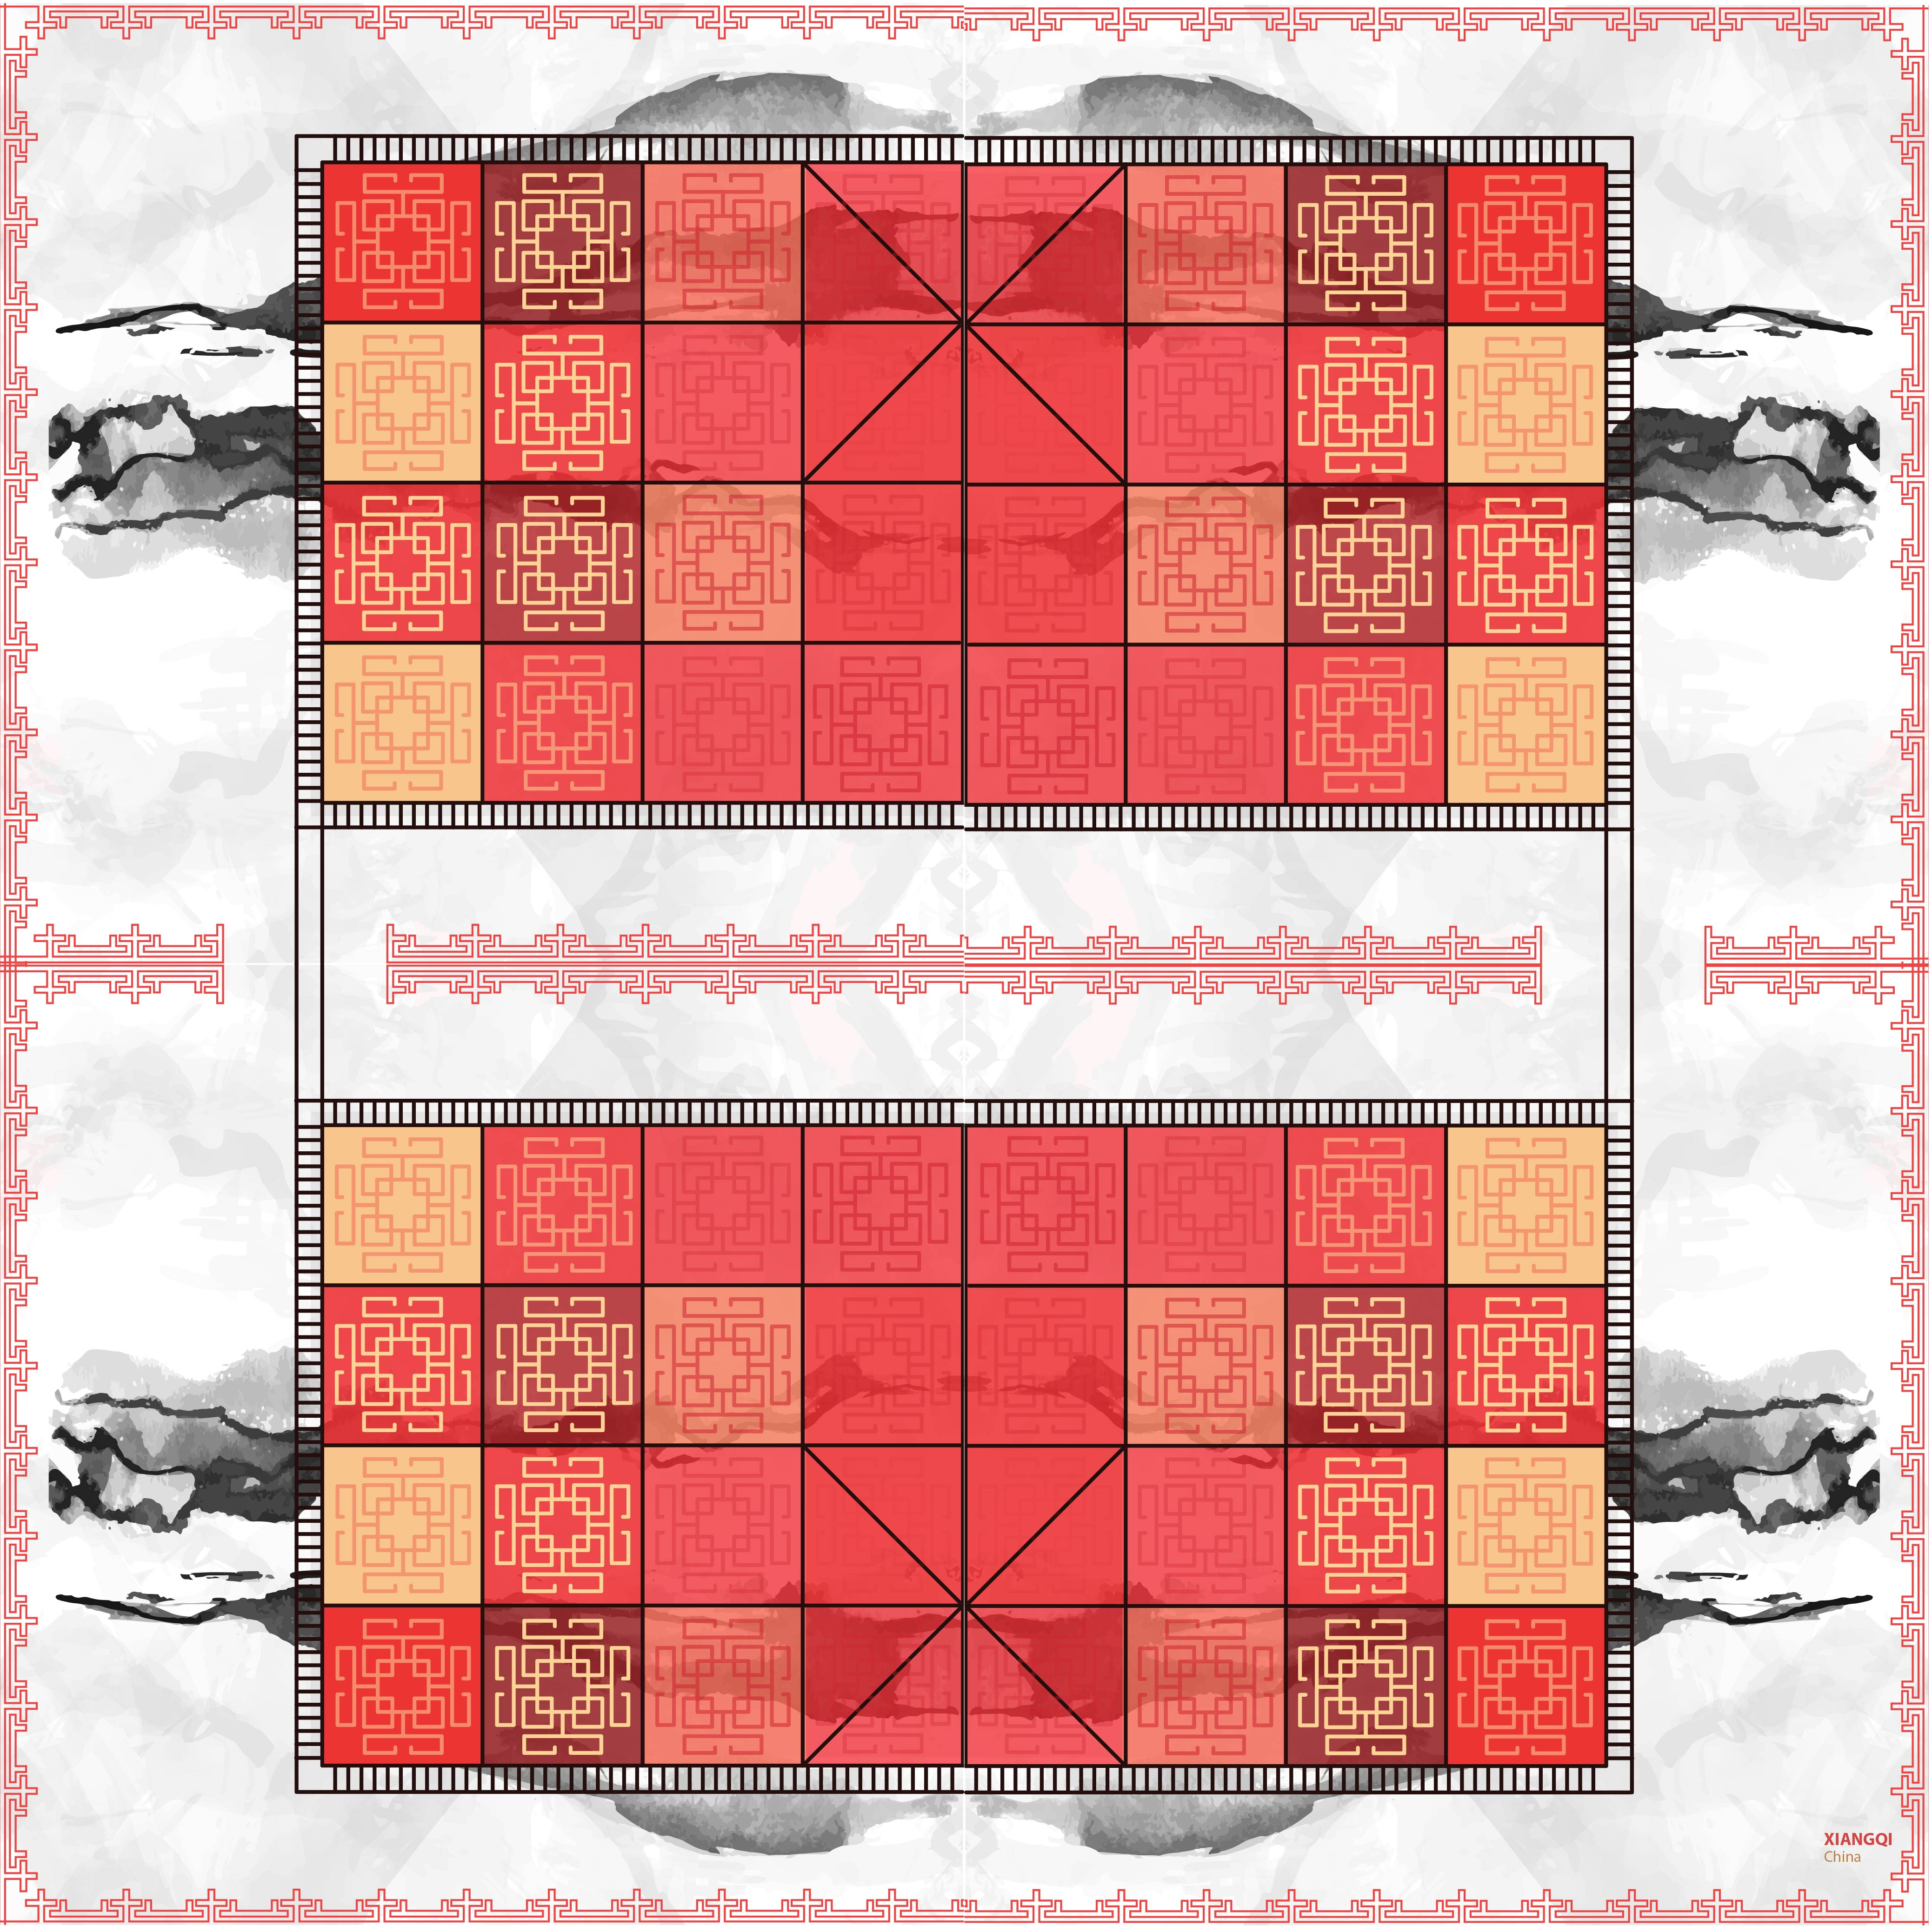 Xiangqi game board